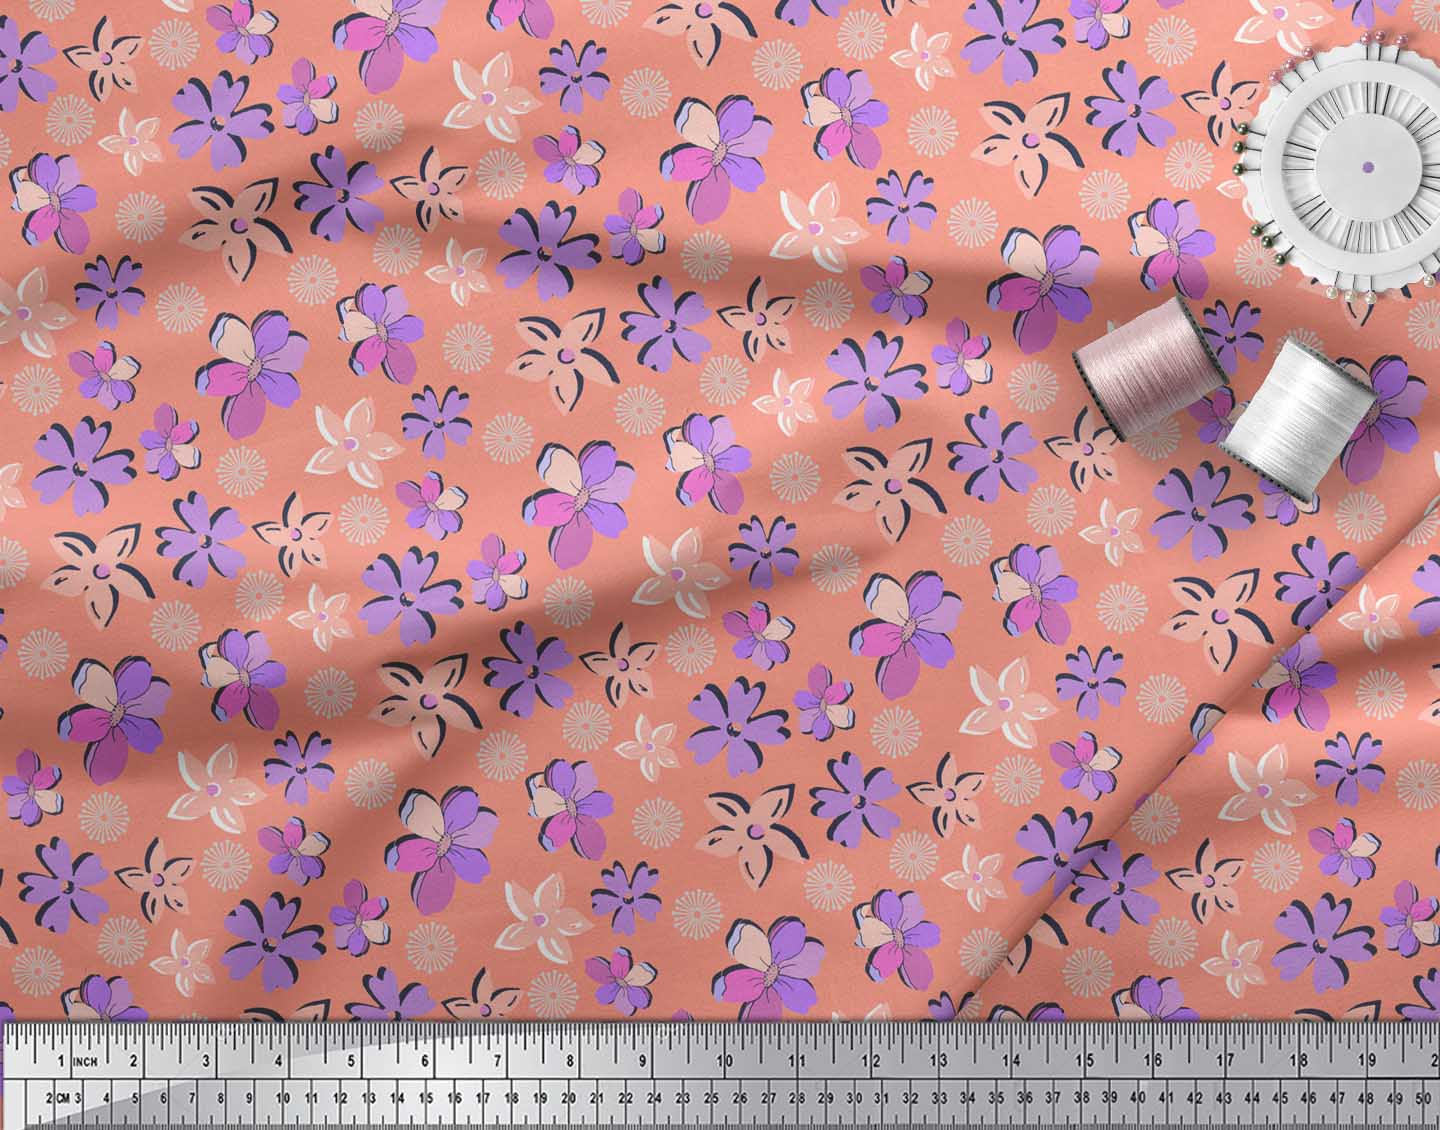 Soimoi-Orange-Cotton-Poplin-Fabric-Artistic-Floral-Printed-Fabric-9Zq thumbnail 4